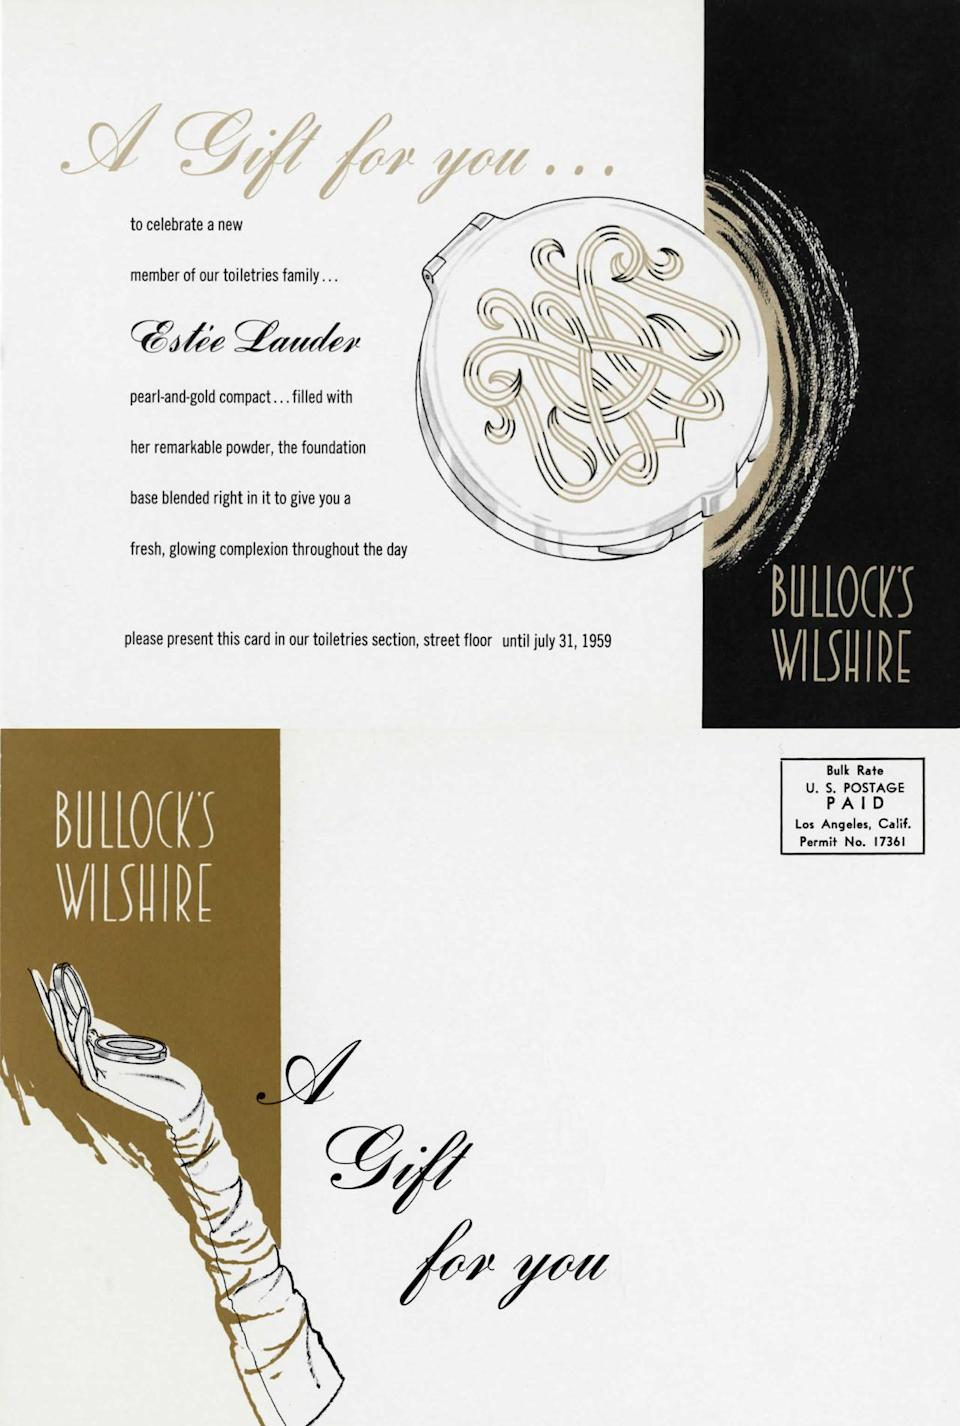 <p>A department store called Bullock's Wilshire in Los Angeles, California sent out this promotional postcard to receive a free pearl and gold compact at makeup counters.<i> (Photo: Estée Lauder)</i></p>